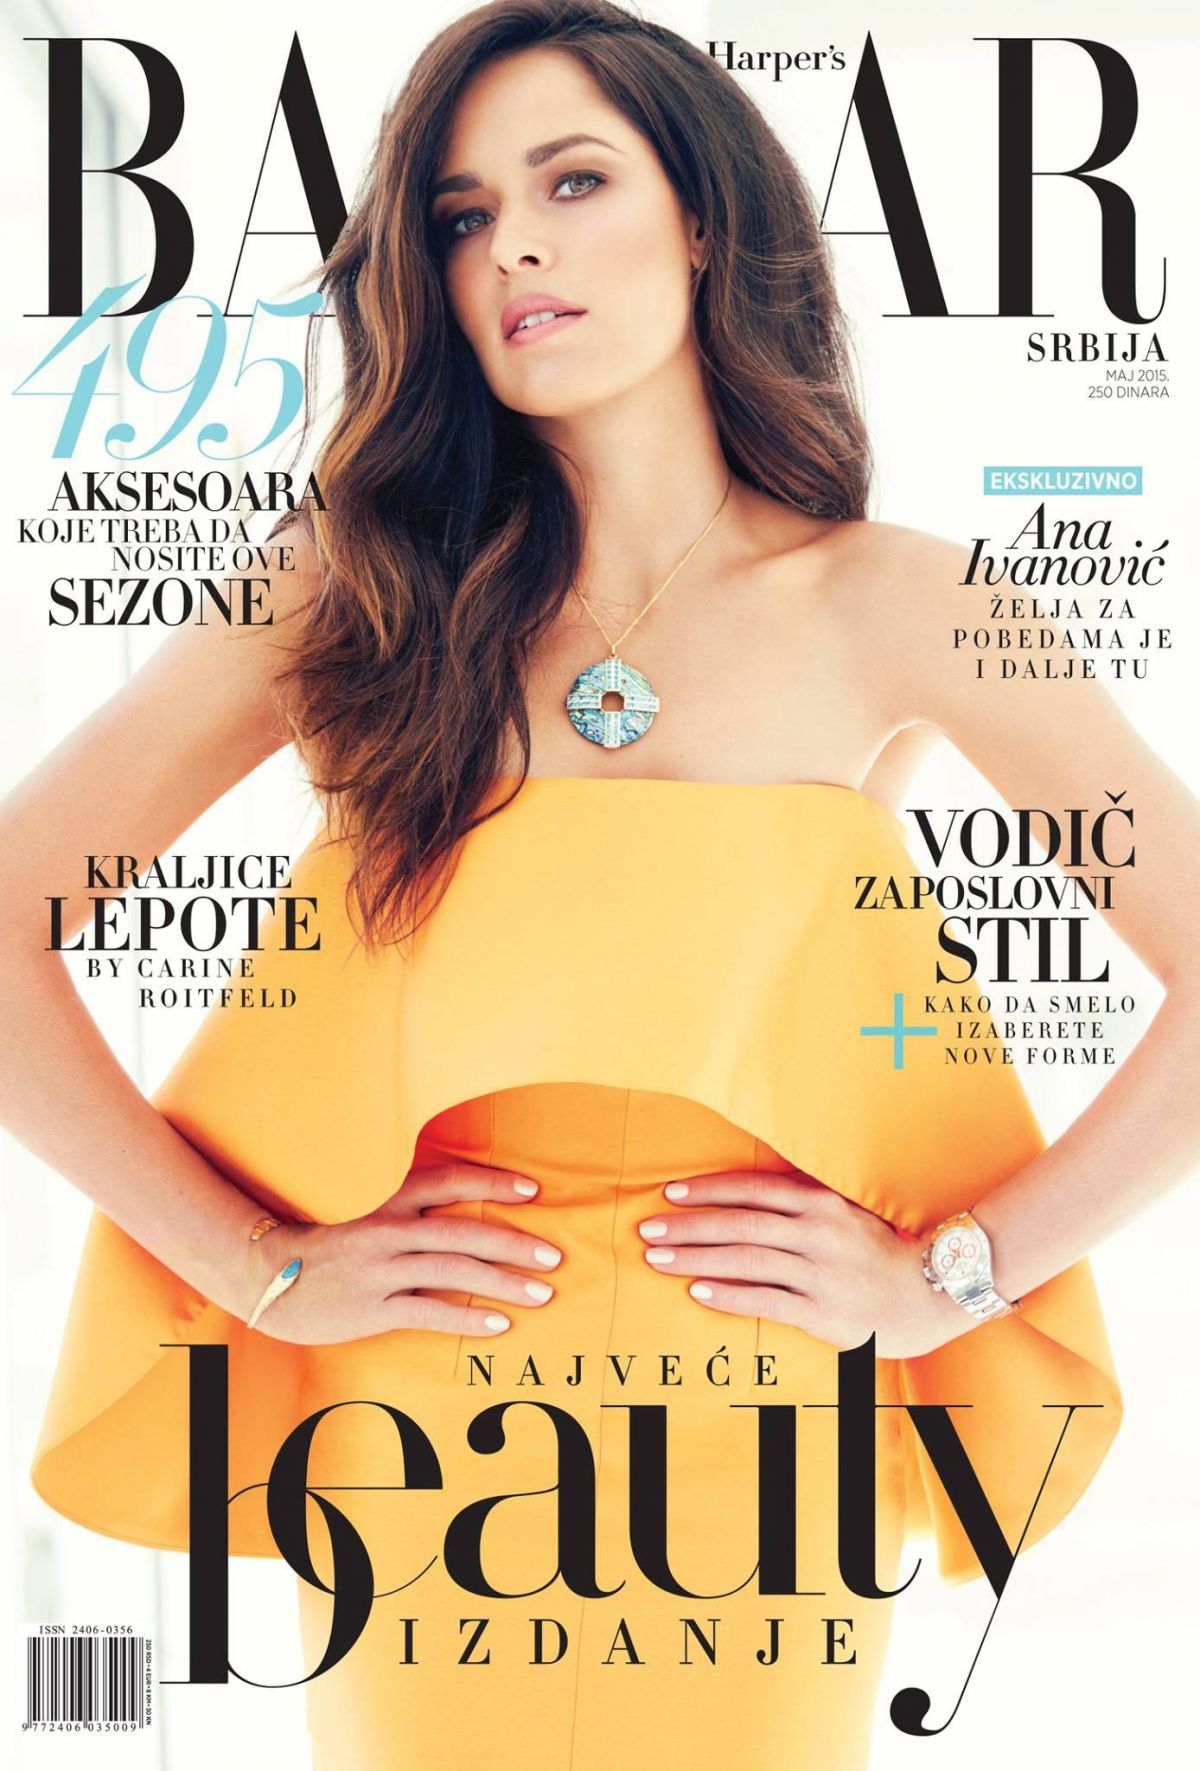 http://www.gotceleb.com/wp-content/uploads/photos/ana-ivanovic/harper-s-bazaar-serbia-cover-may-2015/Ana-Ivanovic---Harpers-Bazaar-Serbia-Cover-2015--01.jpg